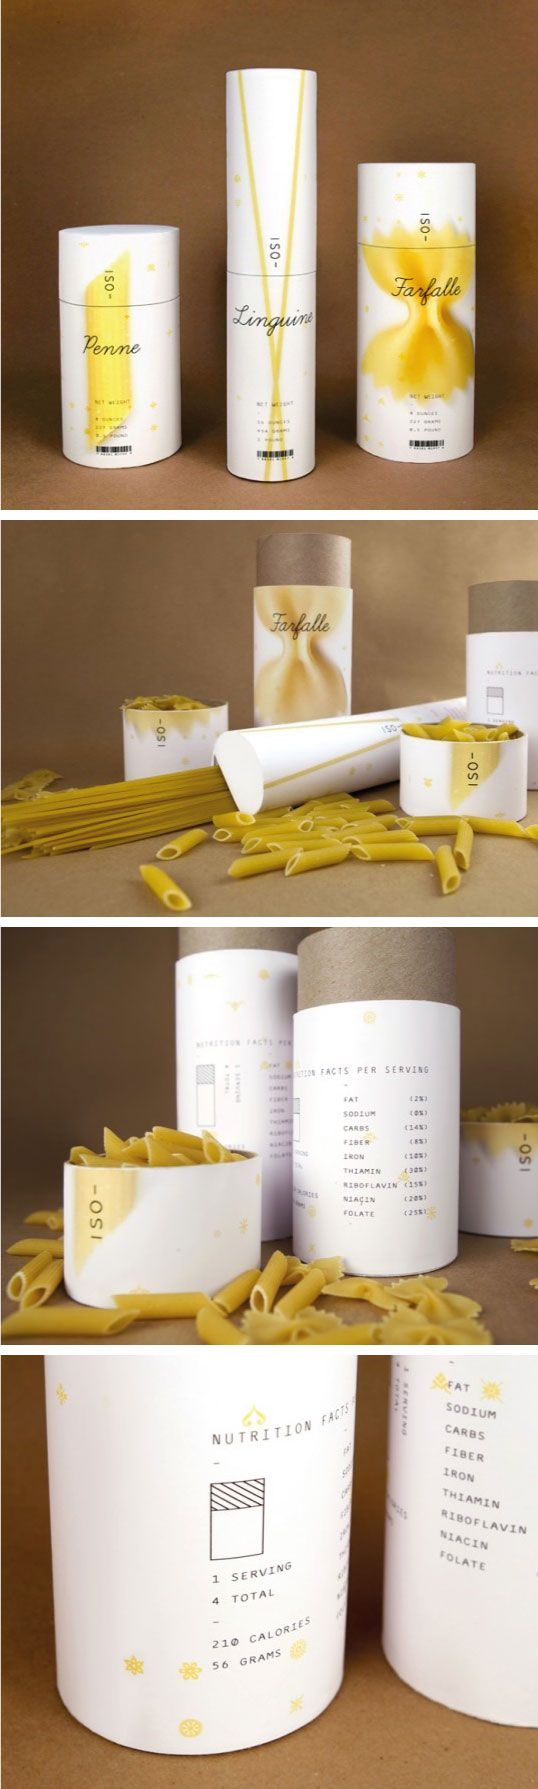 Very nice pasta packaging. The cylinder containers clearly show the various types of pasta in an artful way. The very simple design also goes along well with the simplicity of the uncooked pasta with a basic font and plain background. The packaging is simple, yet visually appealing and informative at a glance.